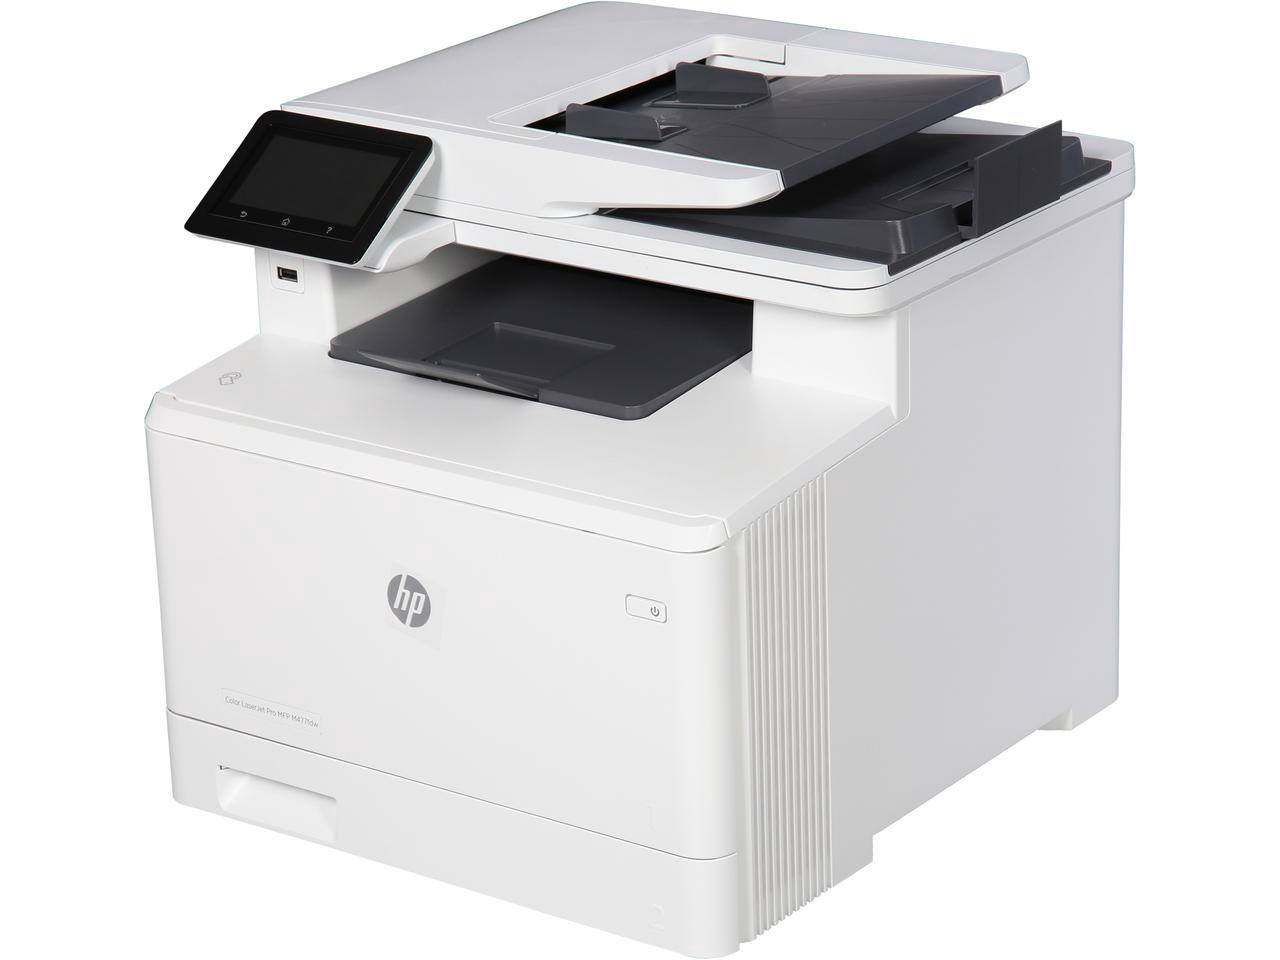 hp color laserjet pro mfp m477fdw help tech co ltd. Black Bedroom Furniture Sets. Home Design Ideas